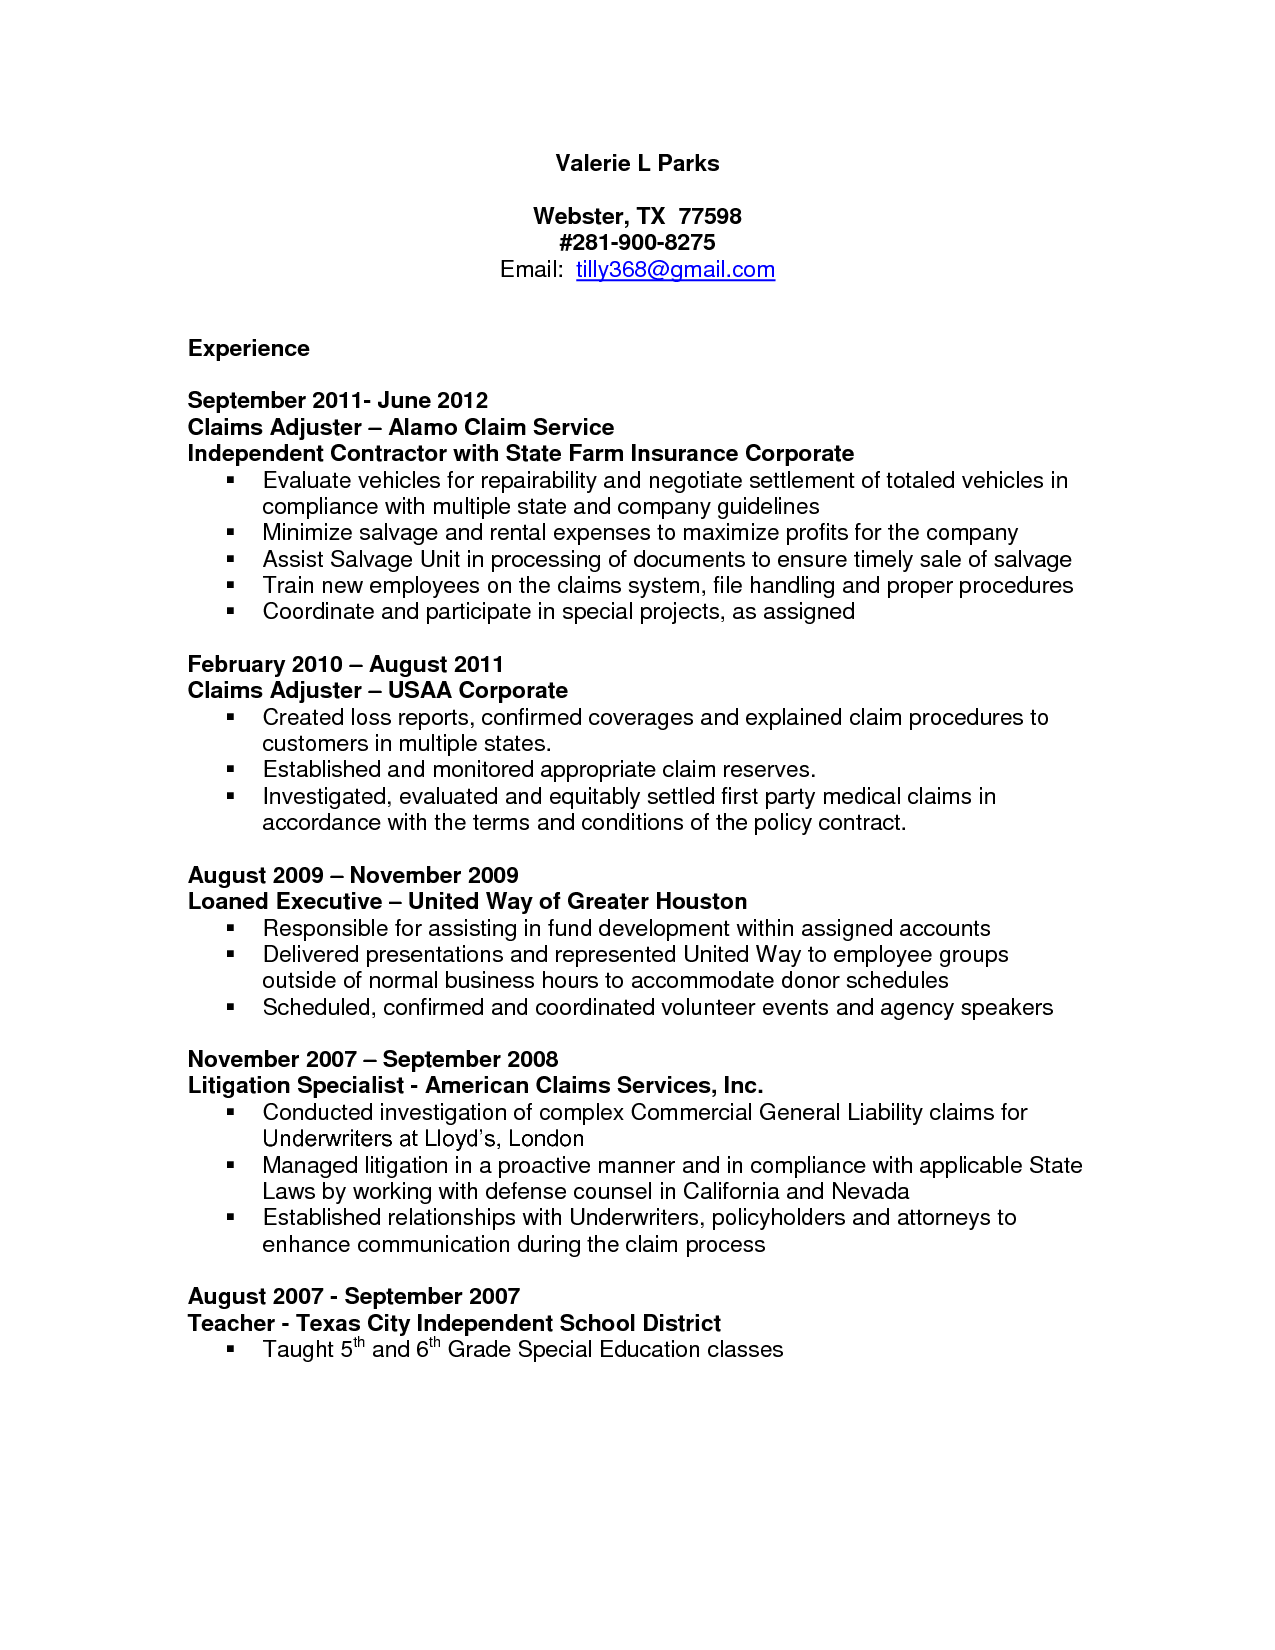 Claims Adjuster Resume Sample Resumesdesign Resume Standard